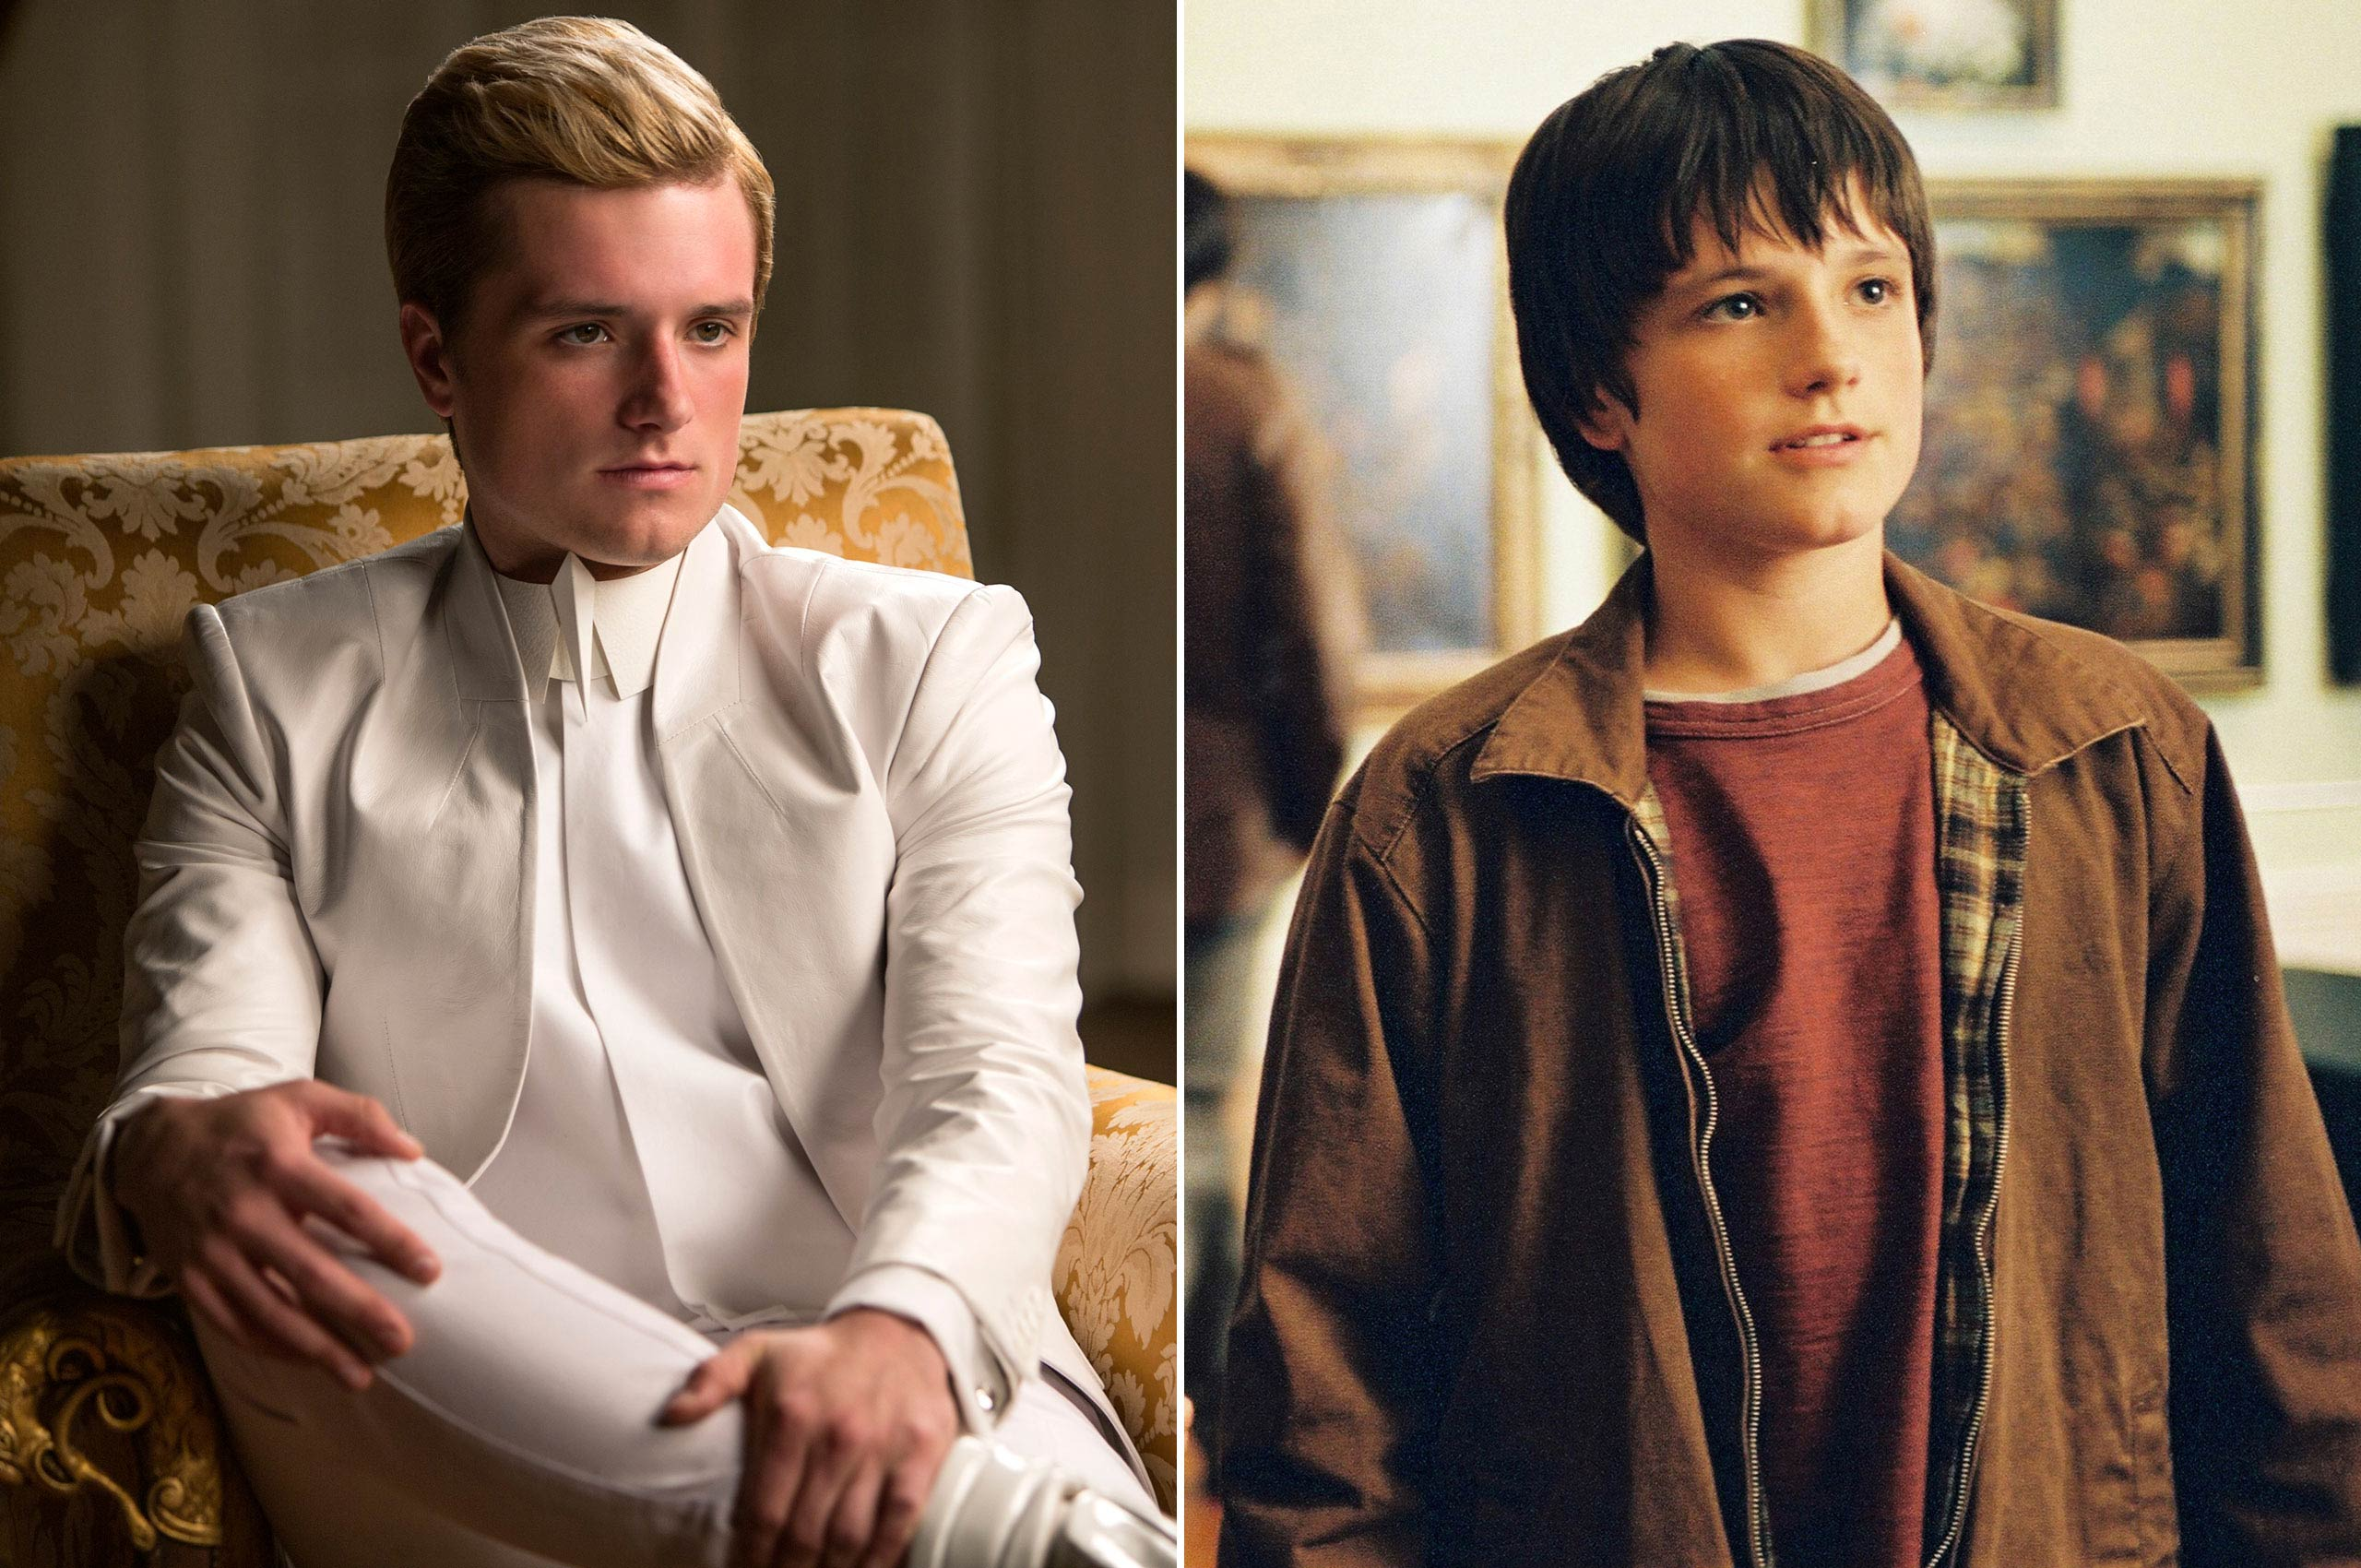 Before he brought to life Peeta Mellark from the <i>Hunger Games</i> novels, he played Jesse Aarons from <i>Bridge to Terabithia</i> in the 2007 fantasy film by the same name.